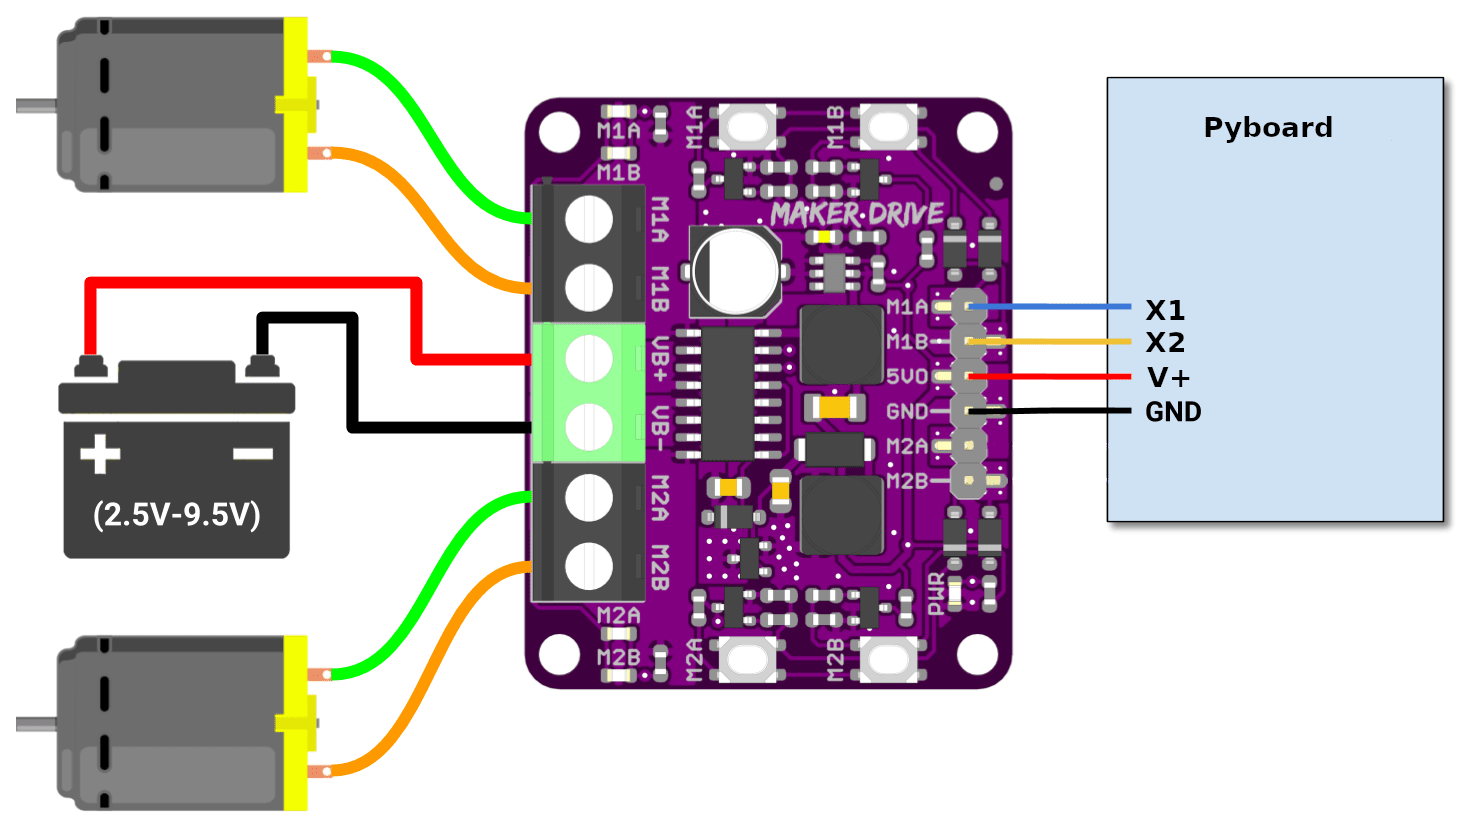 Maker-Drive and pyboard layout